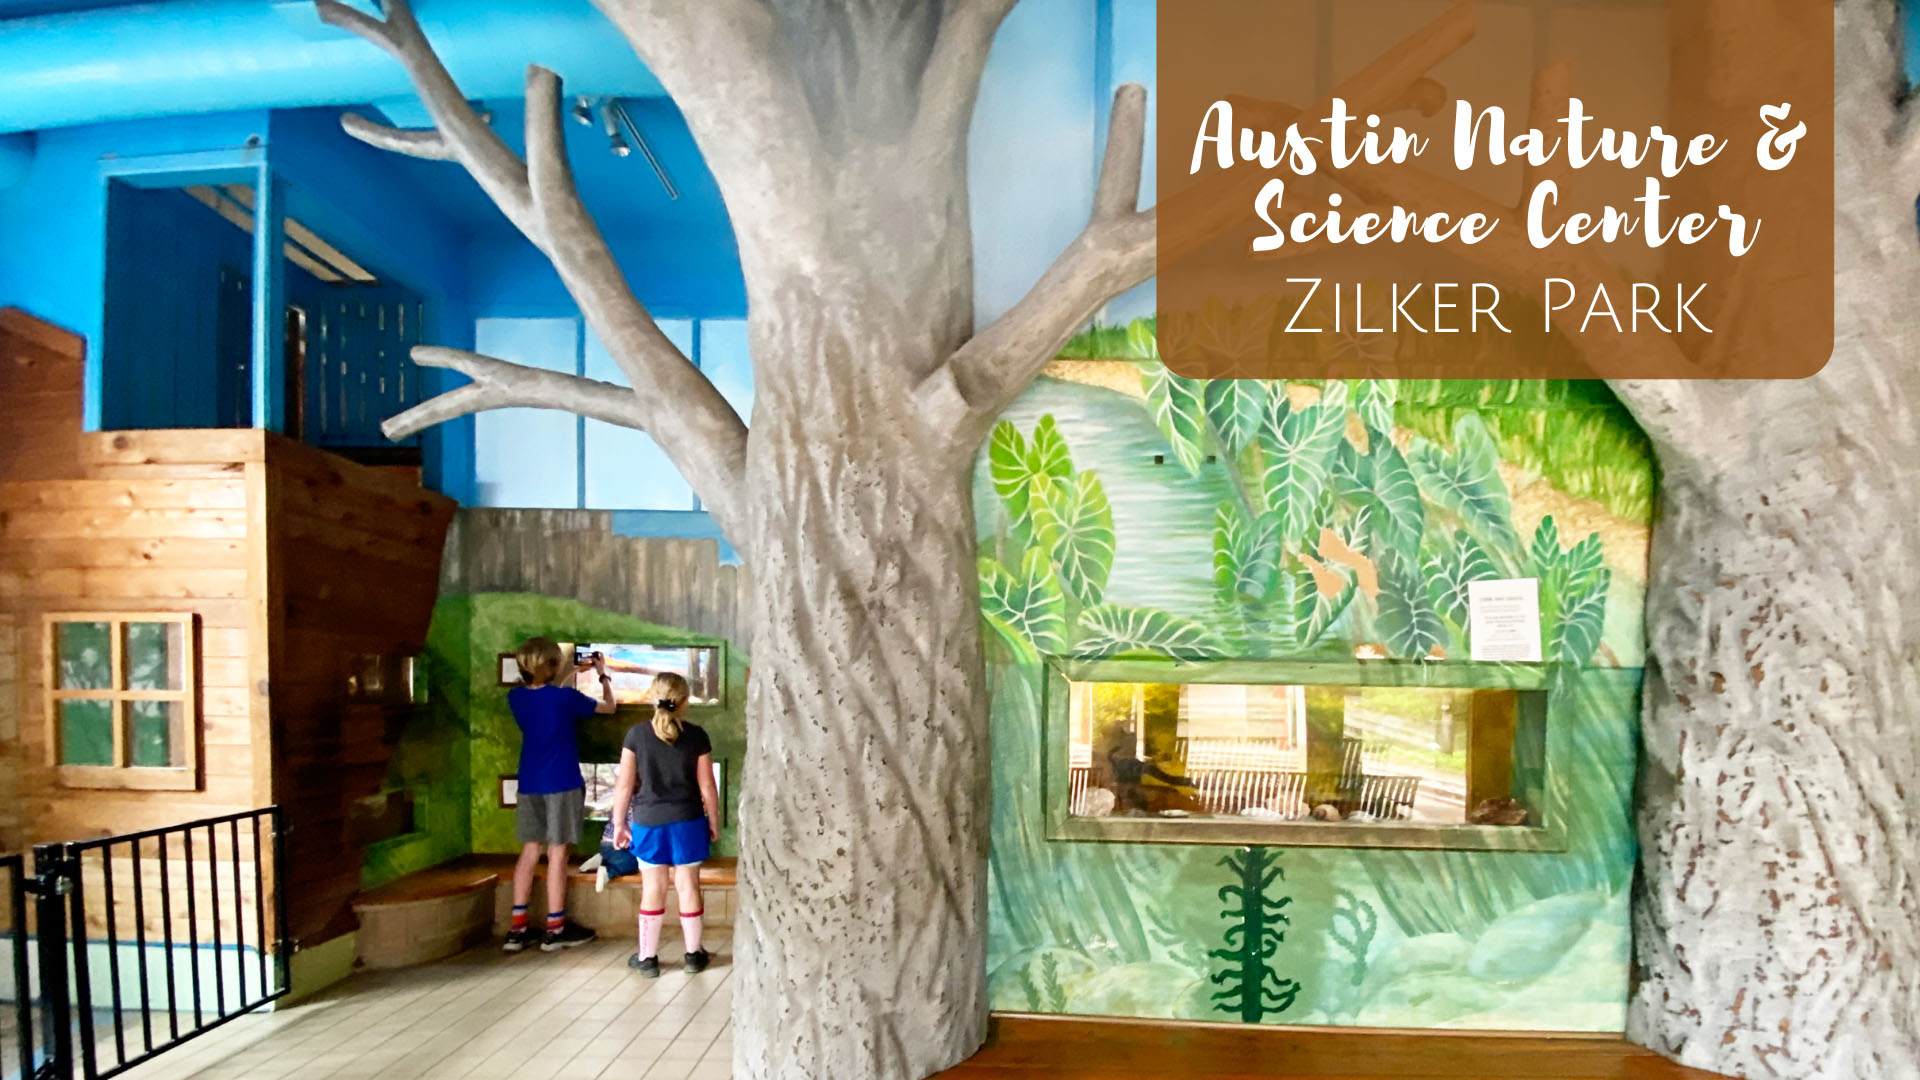 Austin Nature & Science Center at Zilker Park Preserve in Austin, Texas